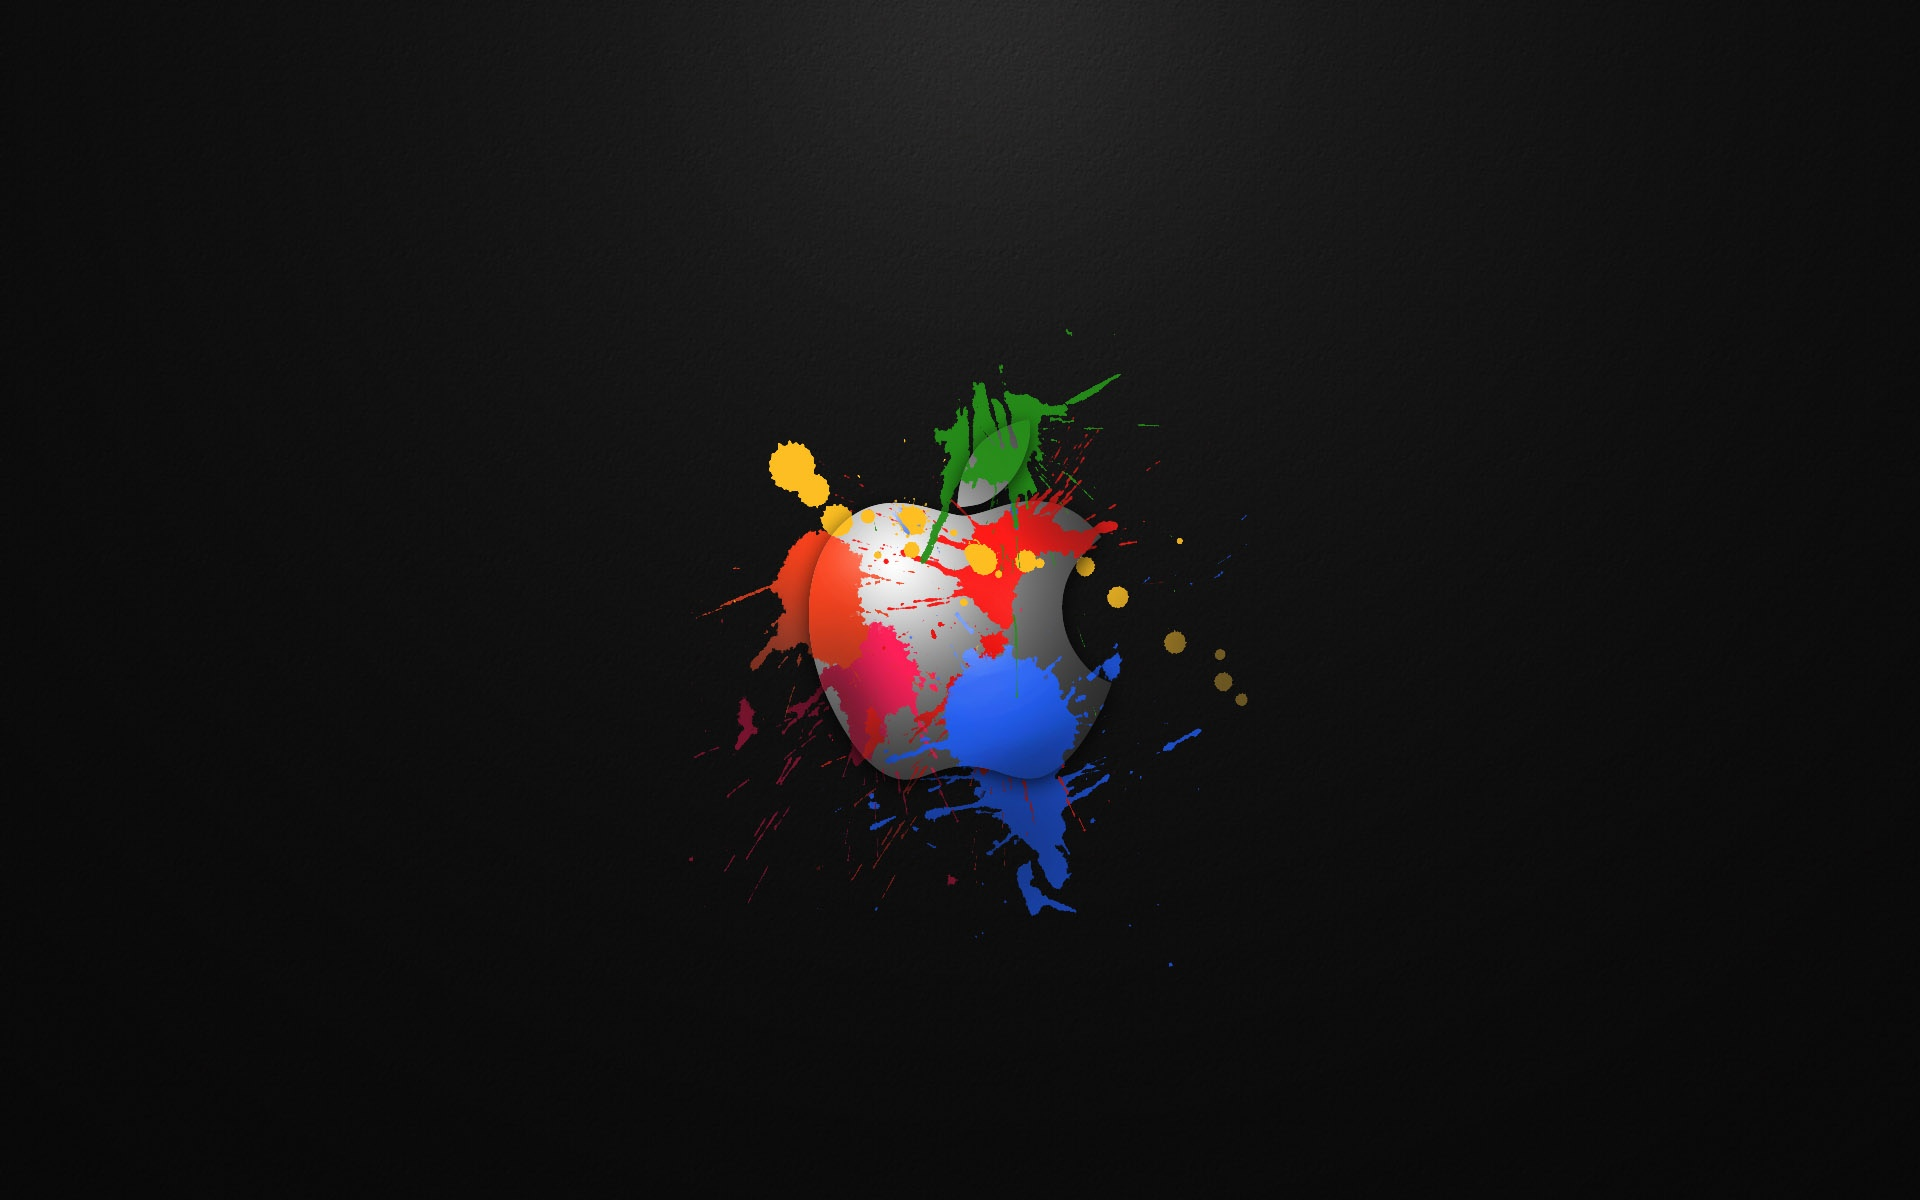 apple iconic images hd | wallpaper.wiki